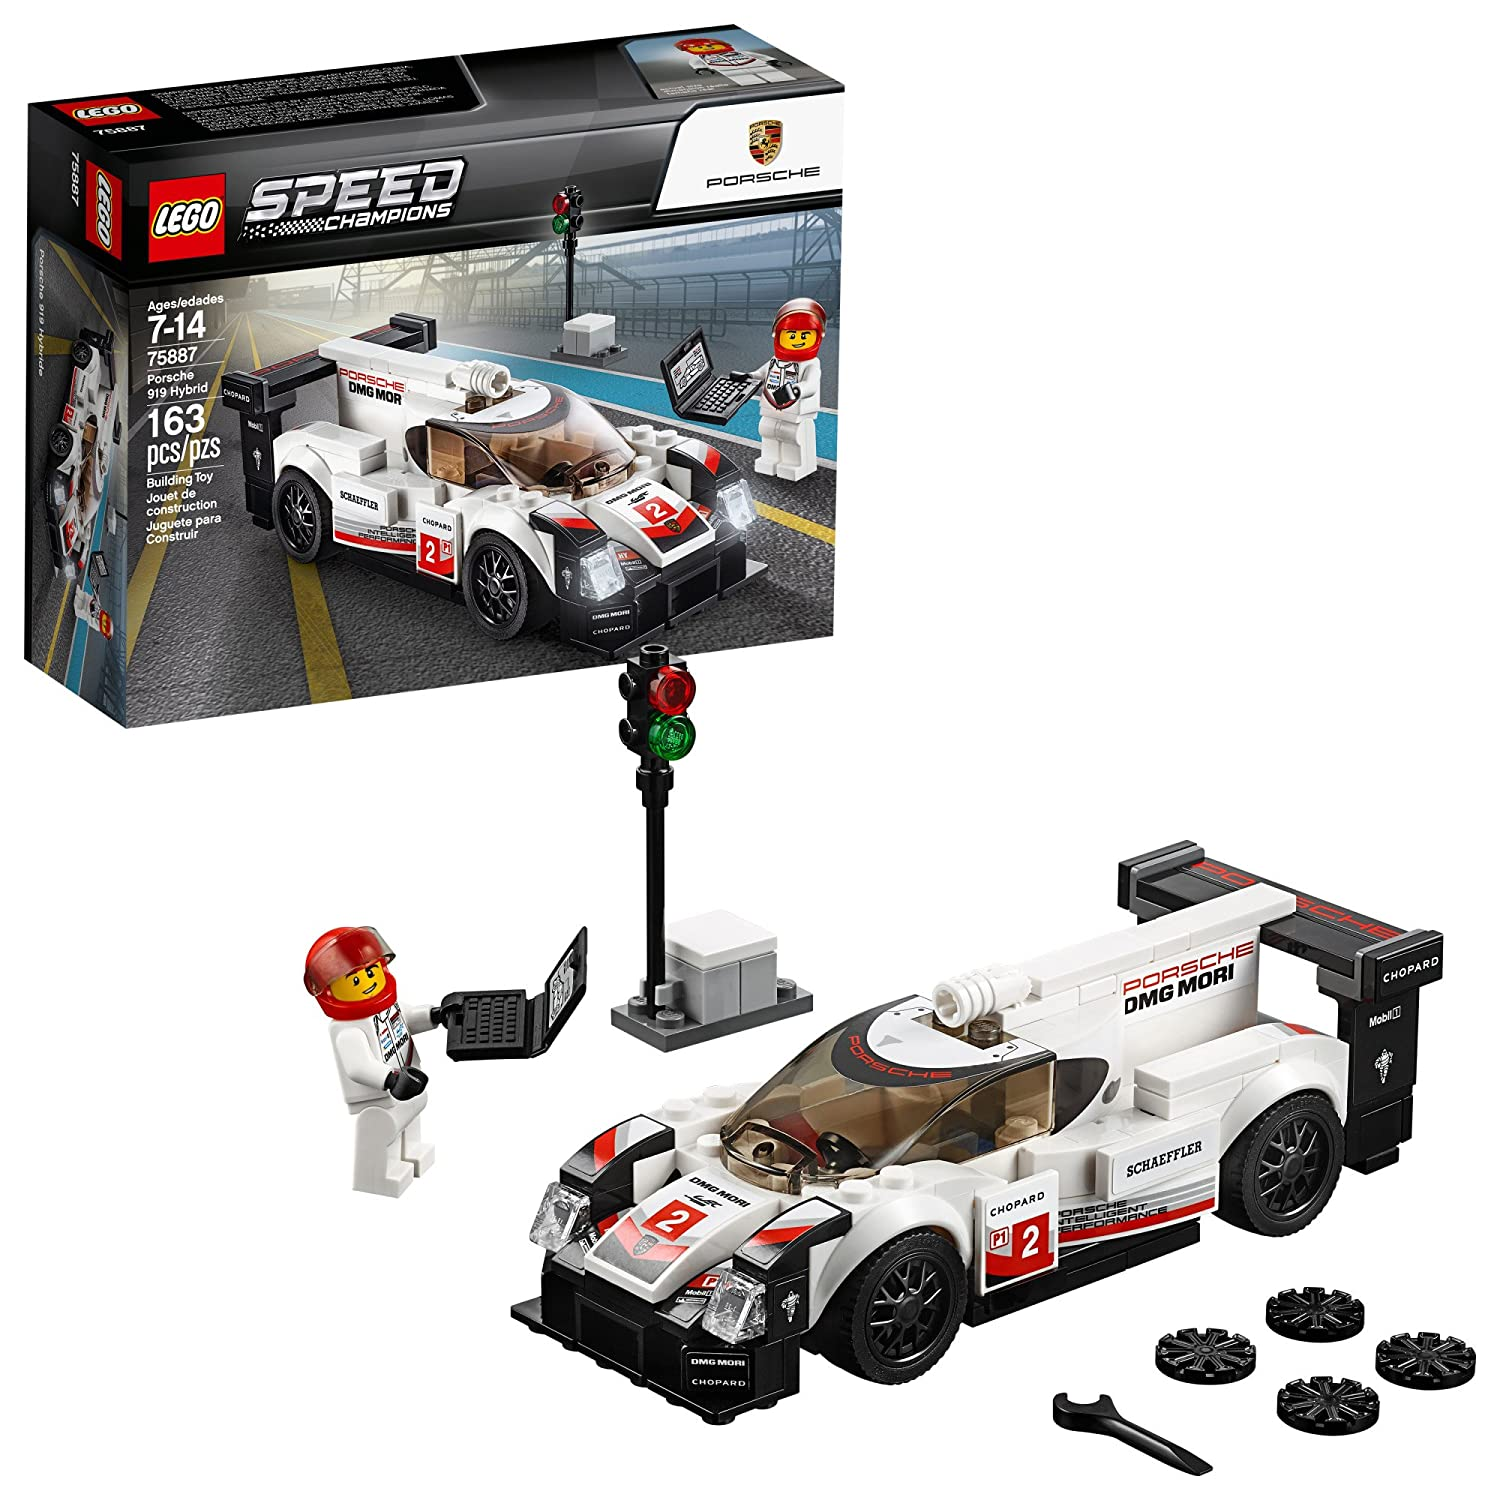 Lego Speed Champions Porsche 919 Hybrid Building Kit (163 Piece), Multi 6212618